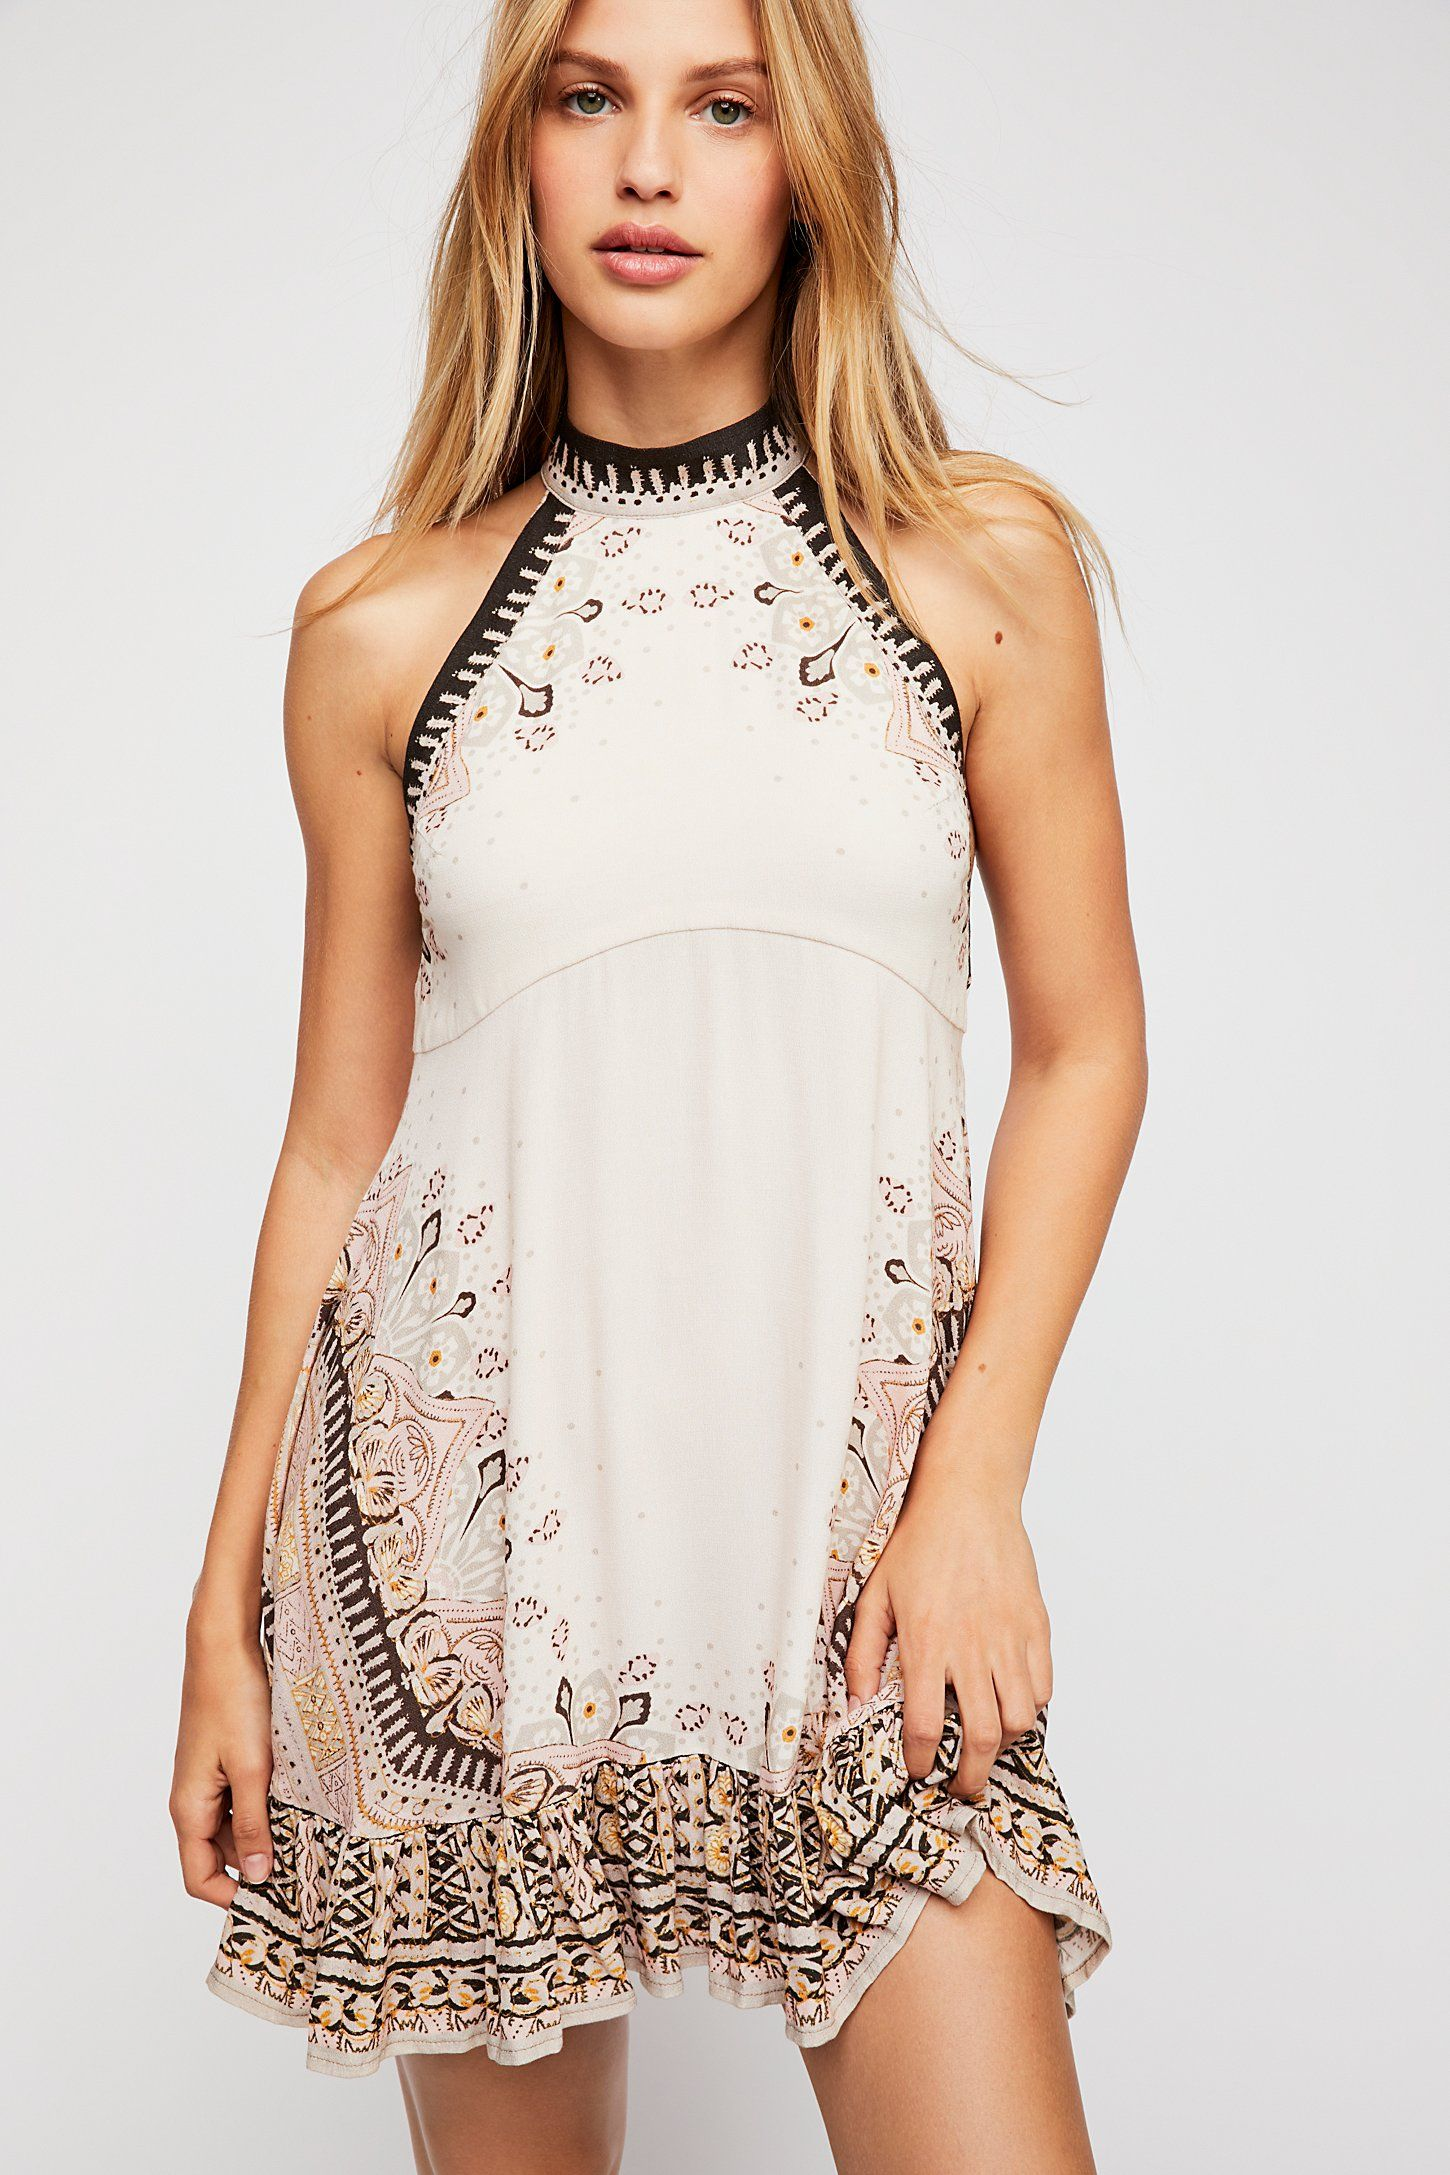 Steal The Sun Printed Tunic | Free People | Pinterest | Free people ...